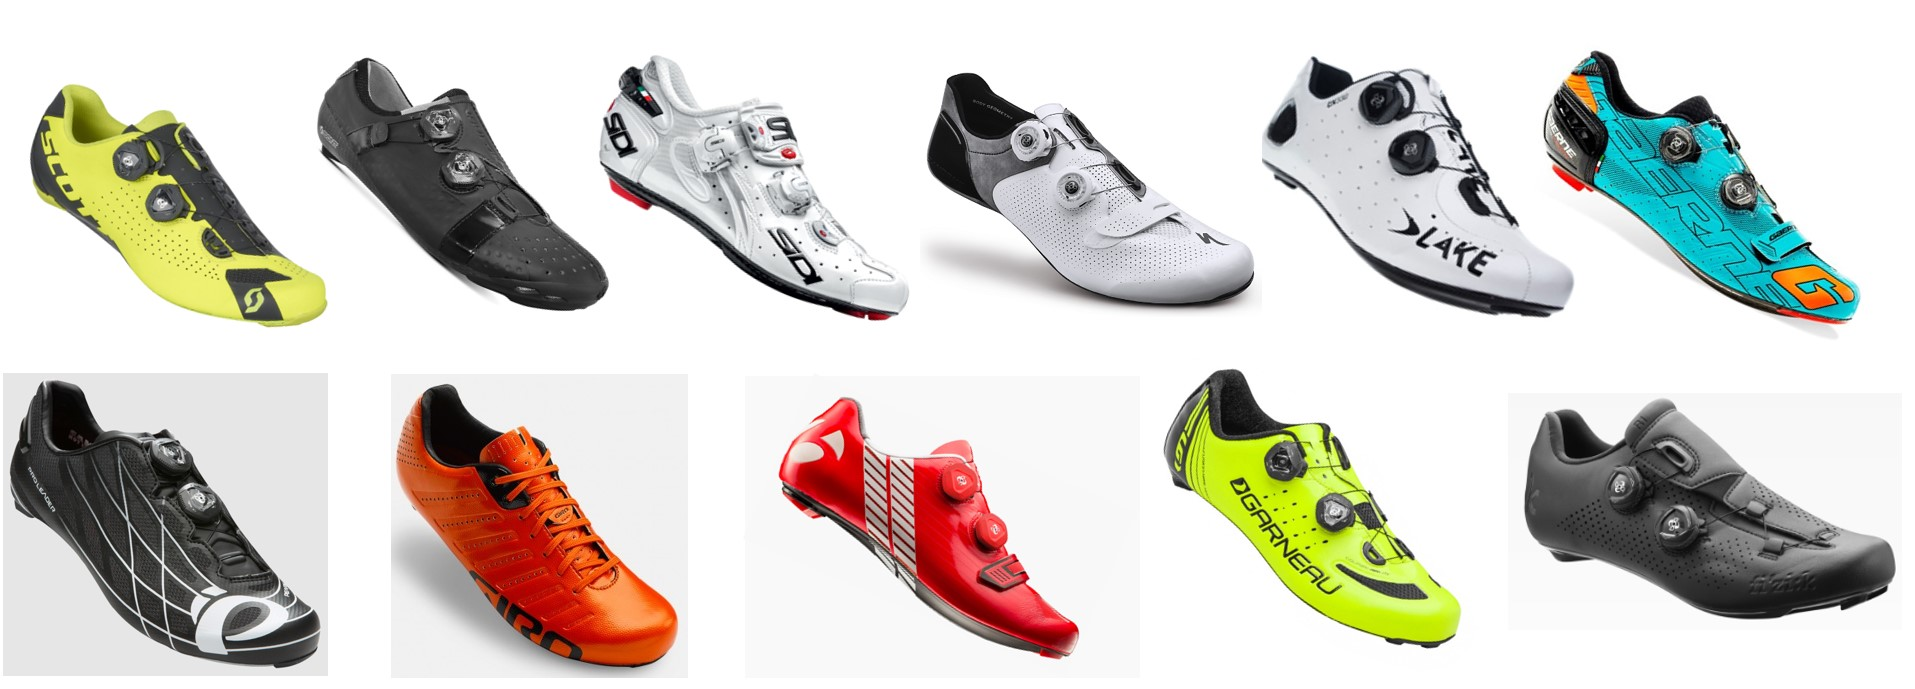 d55f39c80 THE BEST ROAD CYCLING SHOES